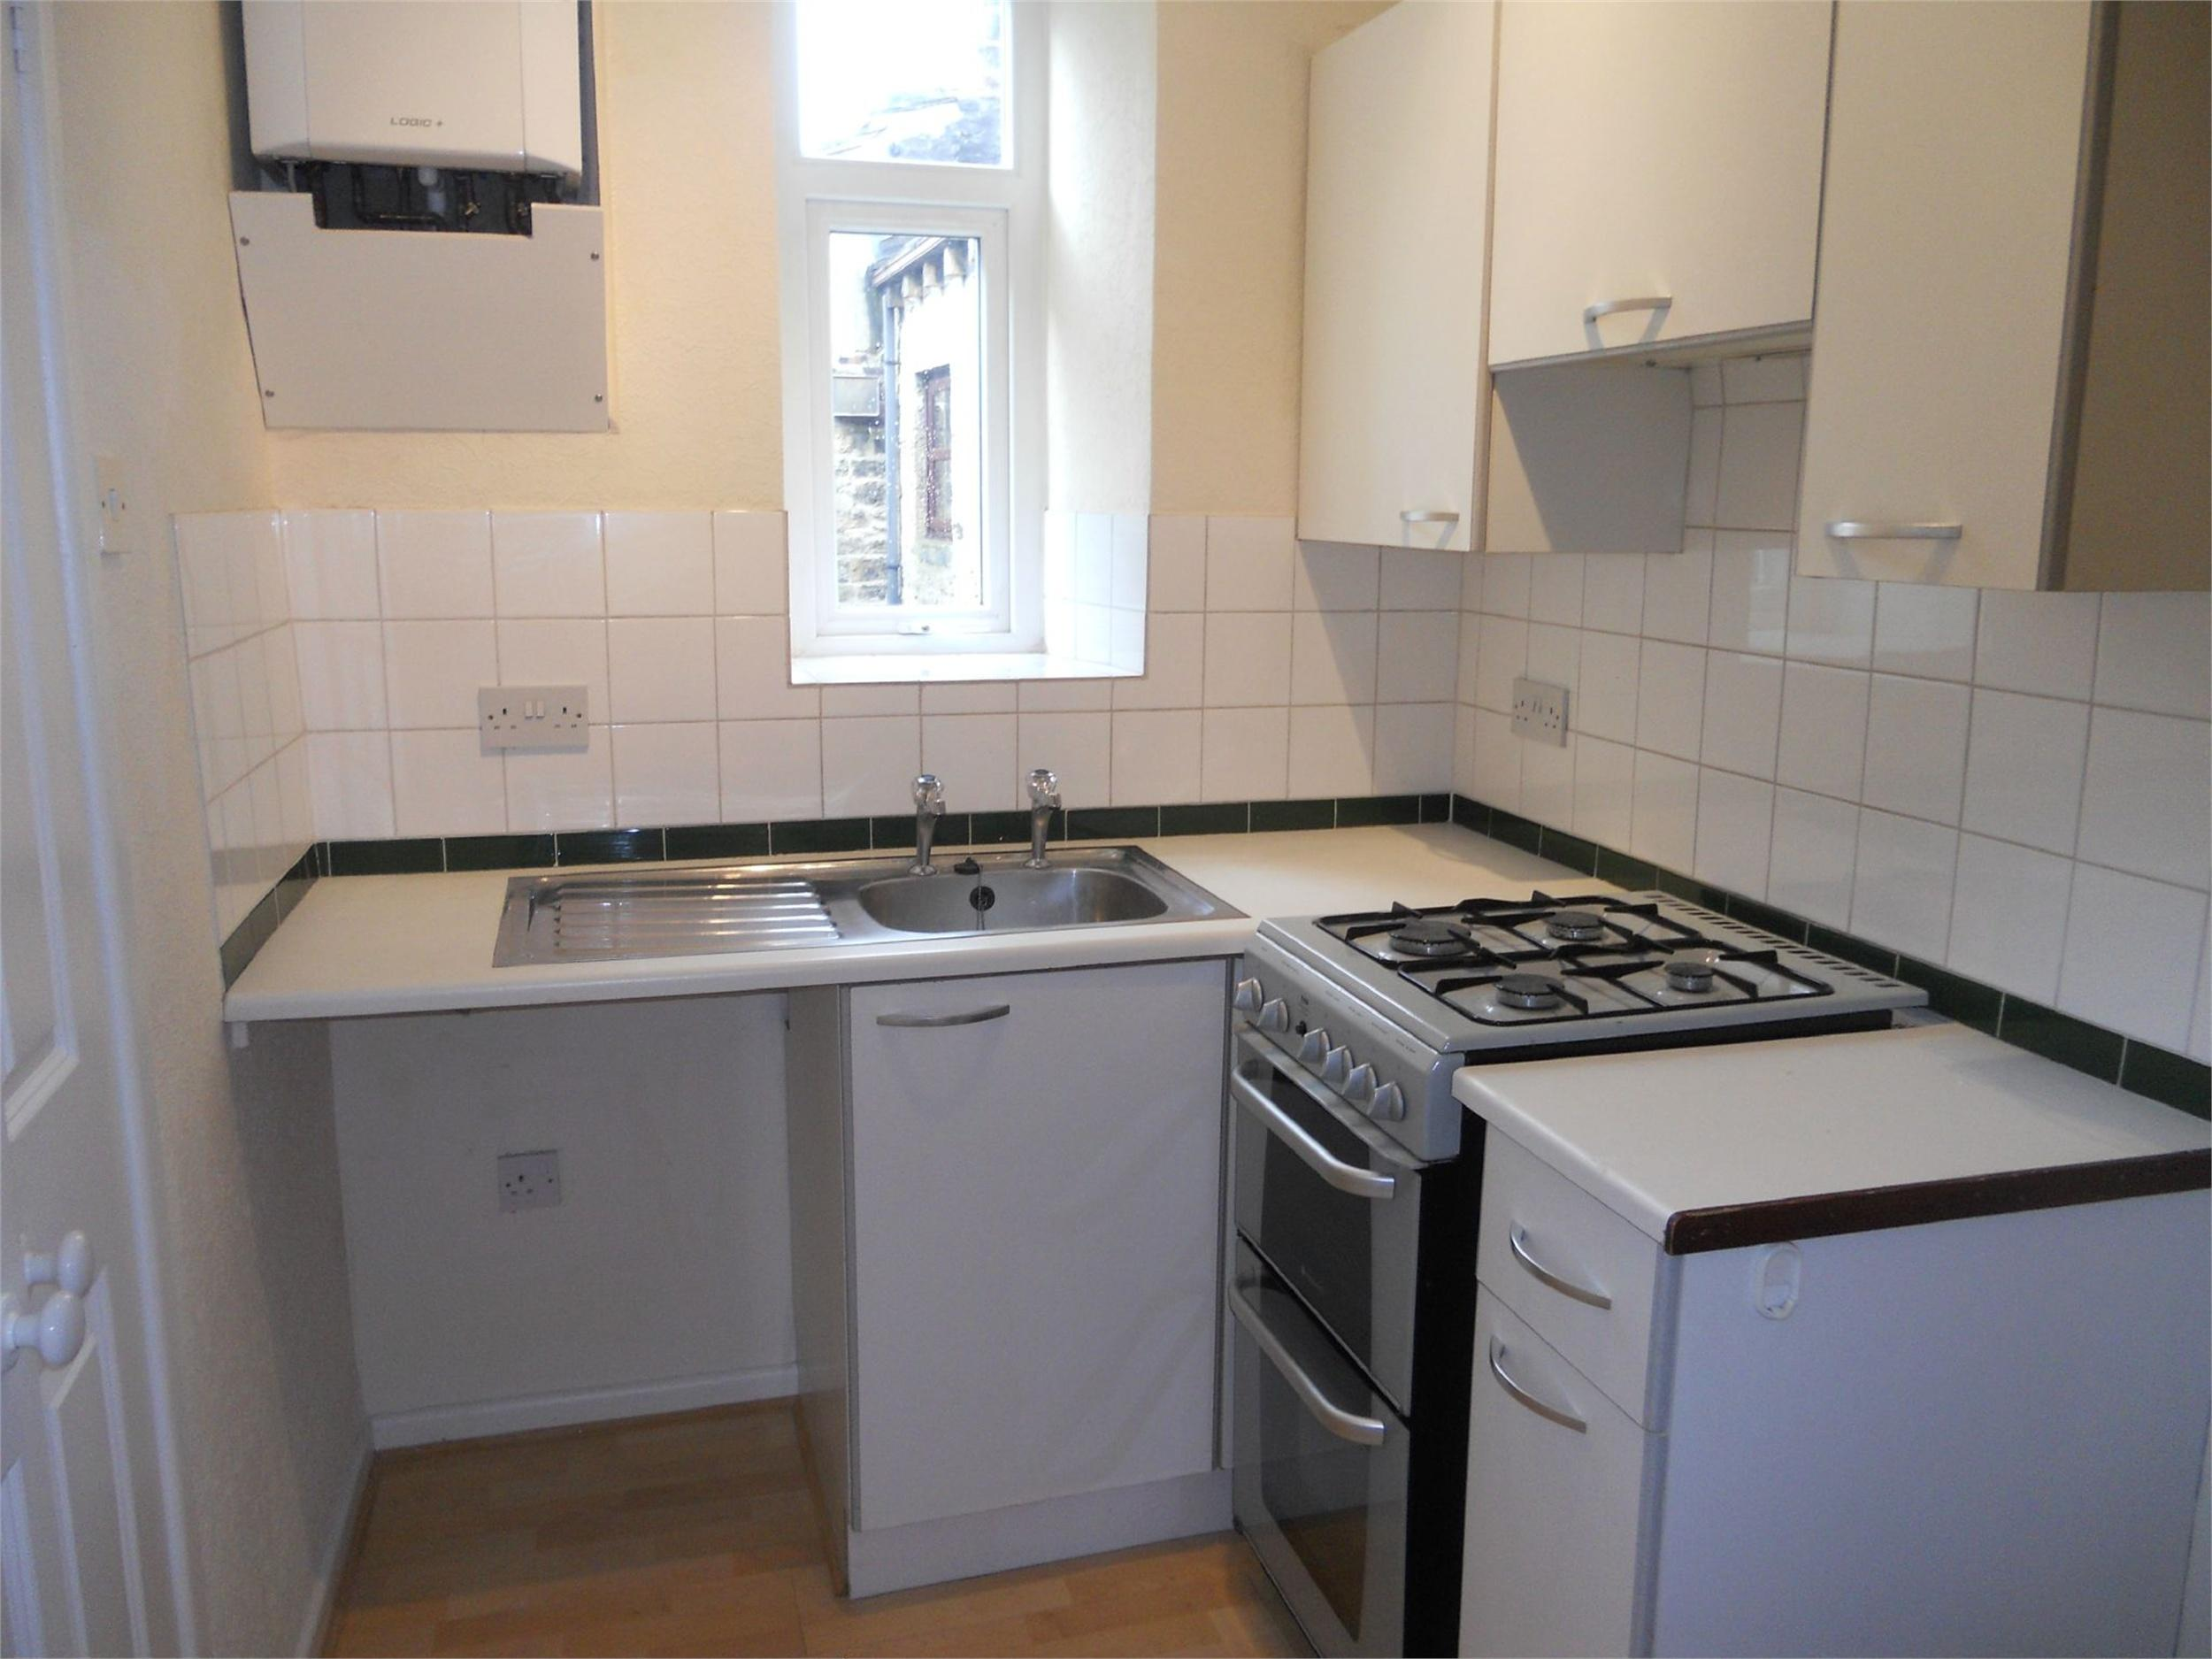 Yorkshire Terrace: Whitegates Keighley 2 Bedroom Terraced House SSTC In 46/48